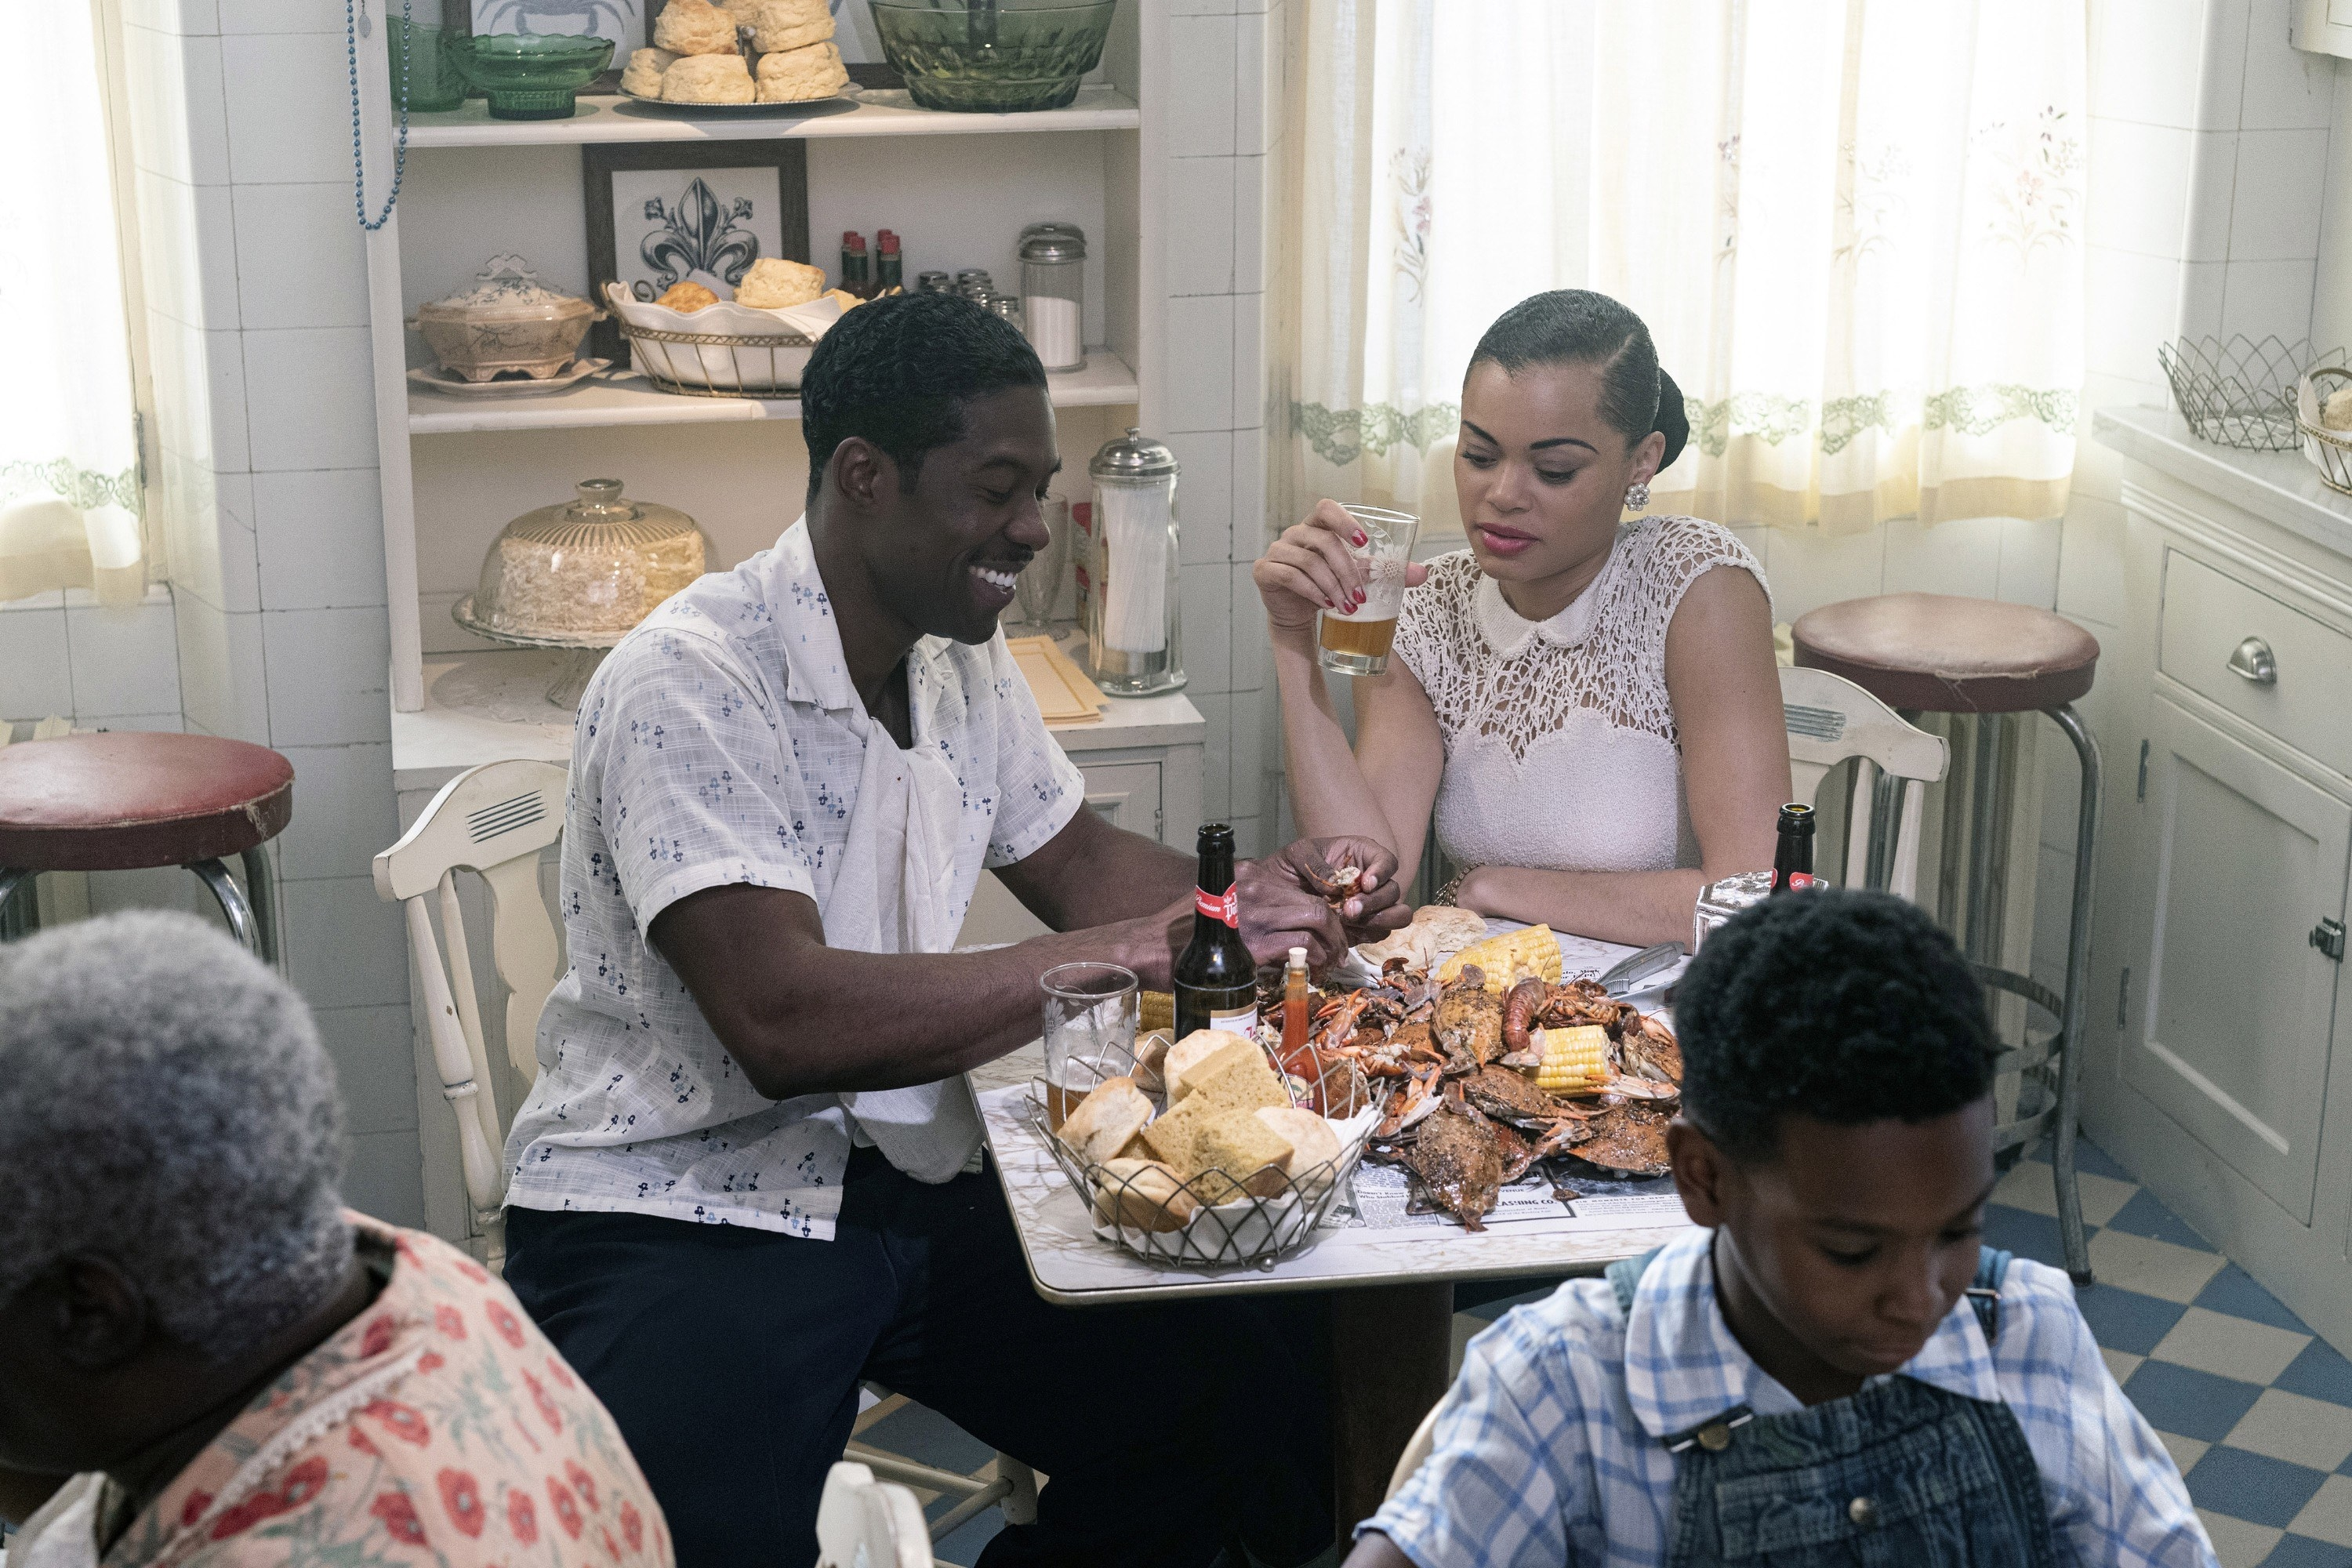 Trevante and Billie eating and drinking at a table in a scene from The United States Vs. Billie Holiday